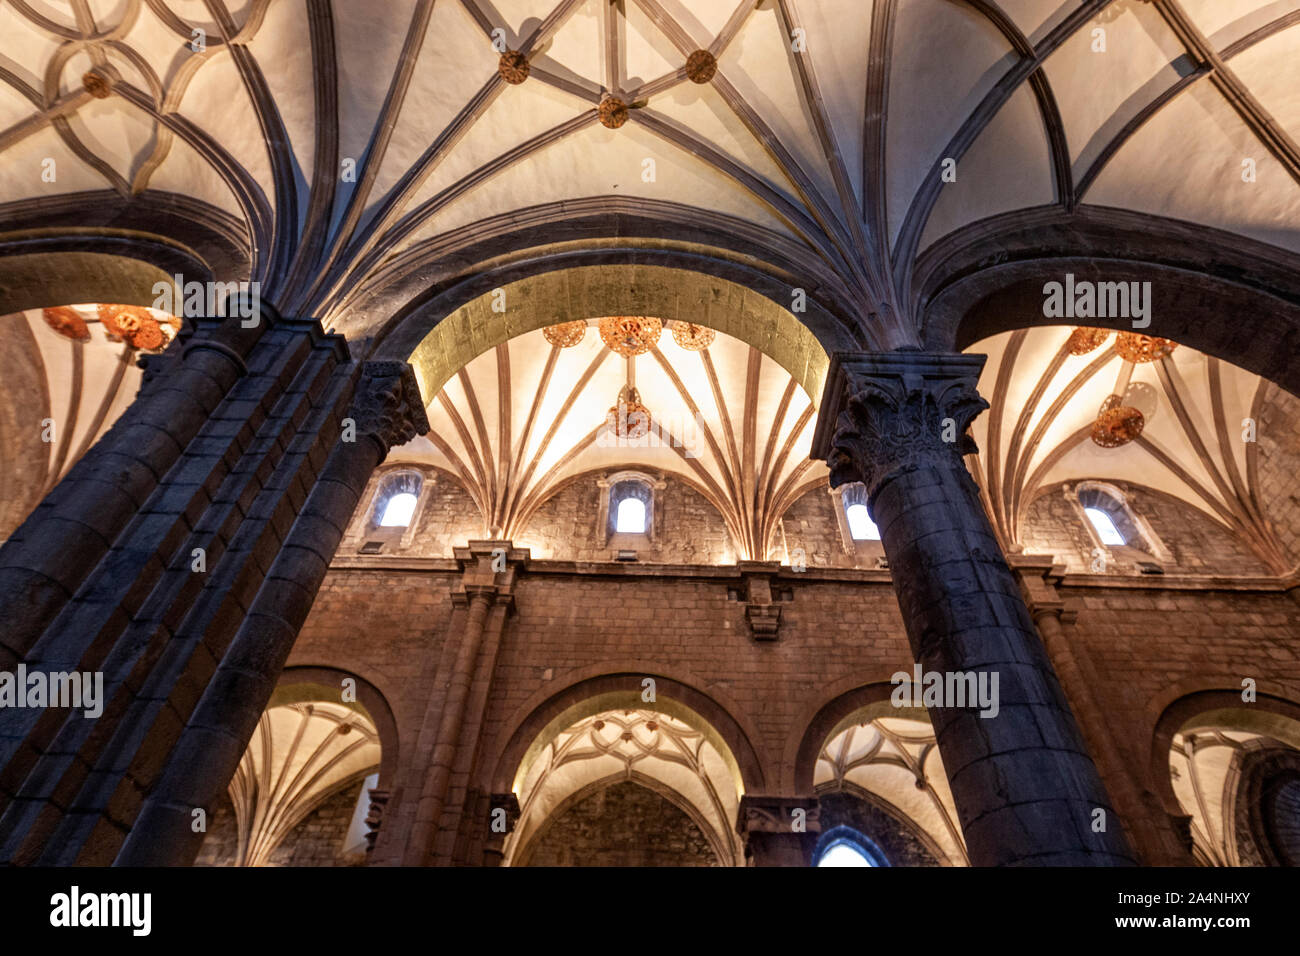 vaulted-ceiling-in-nave-and-arches-in-ja